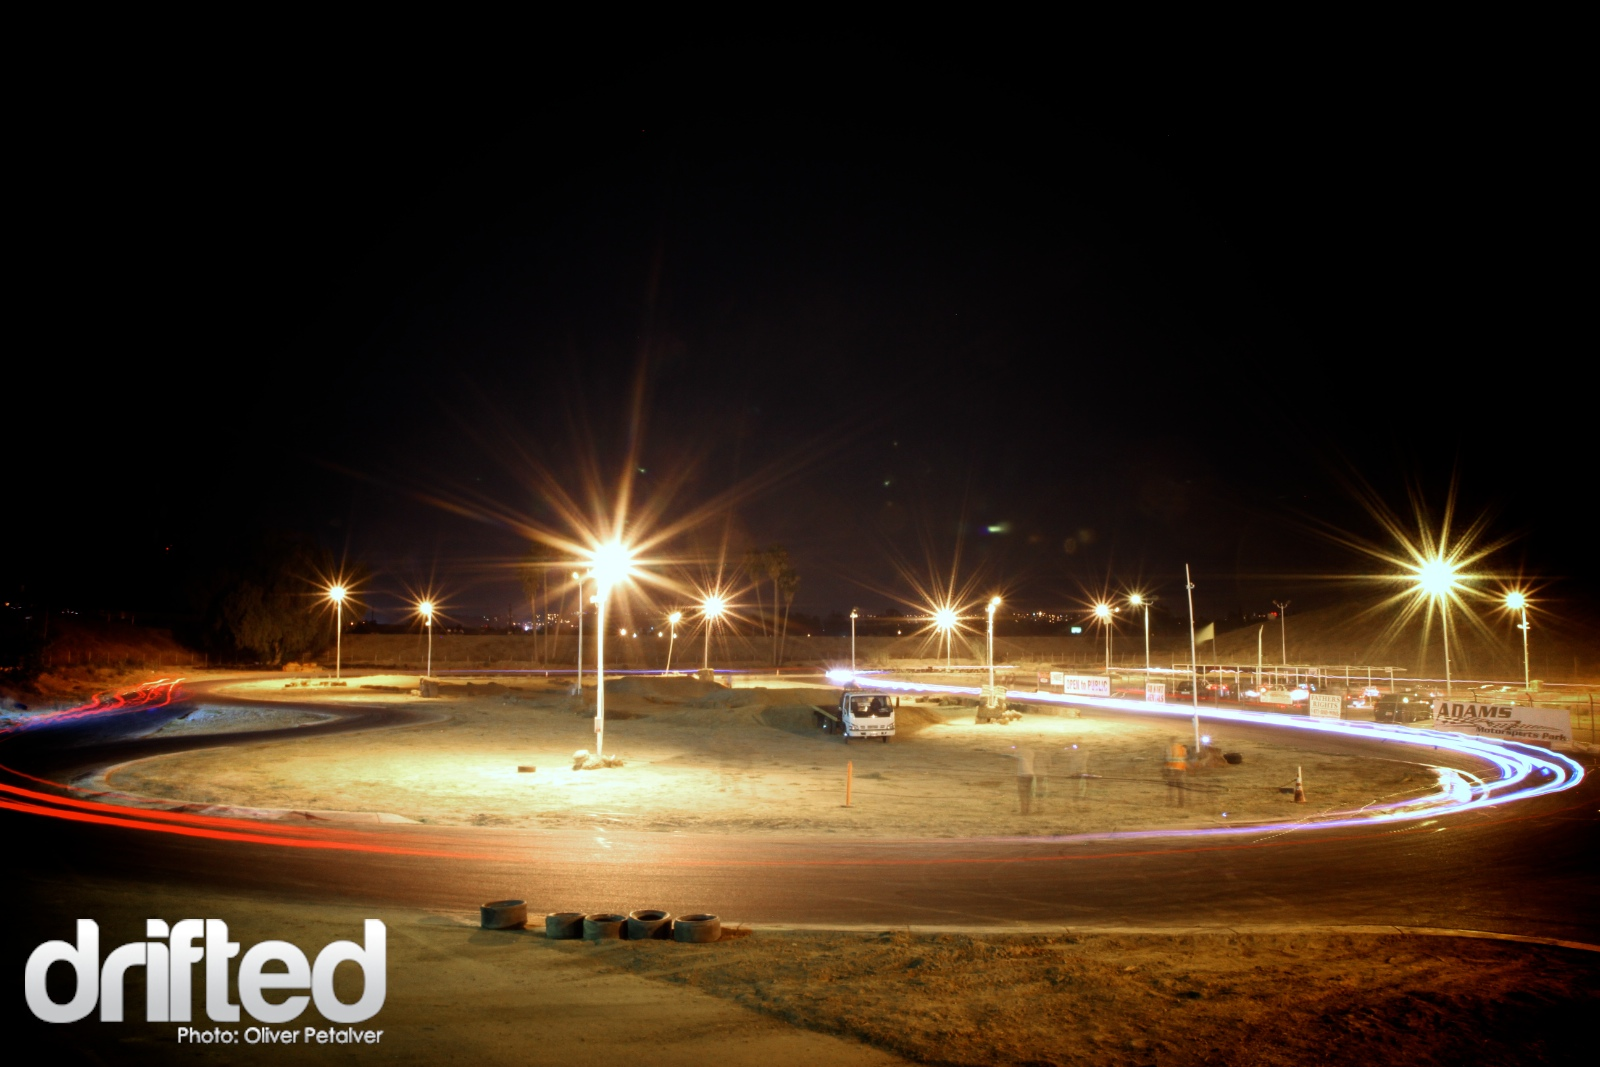 GRASSROOTS: Weekly Drift Nights @ Adams Motorsports Park